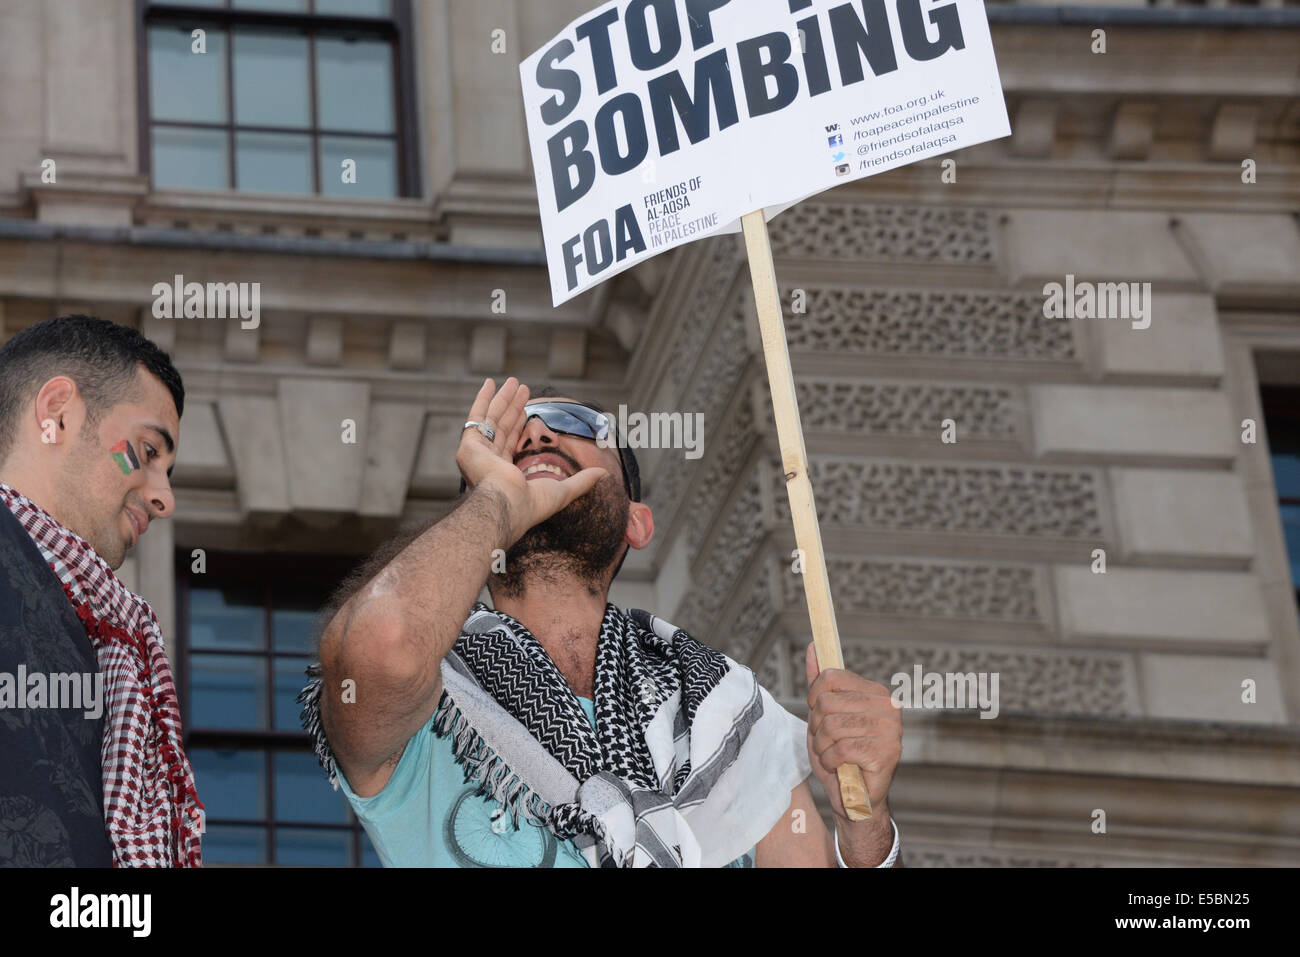 London, UK. 26th July, 2014. Stop the 'massacre' in Gaza protest. A demonstration called by: Stop the War Coalition, Stock Photo